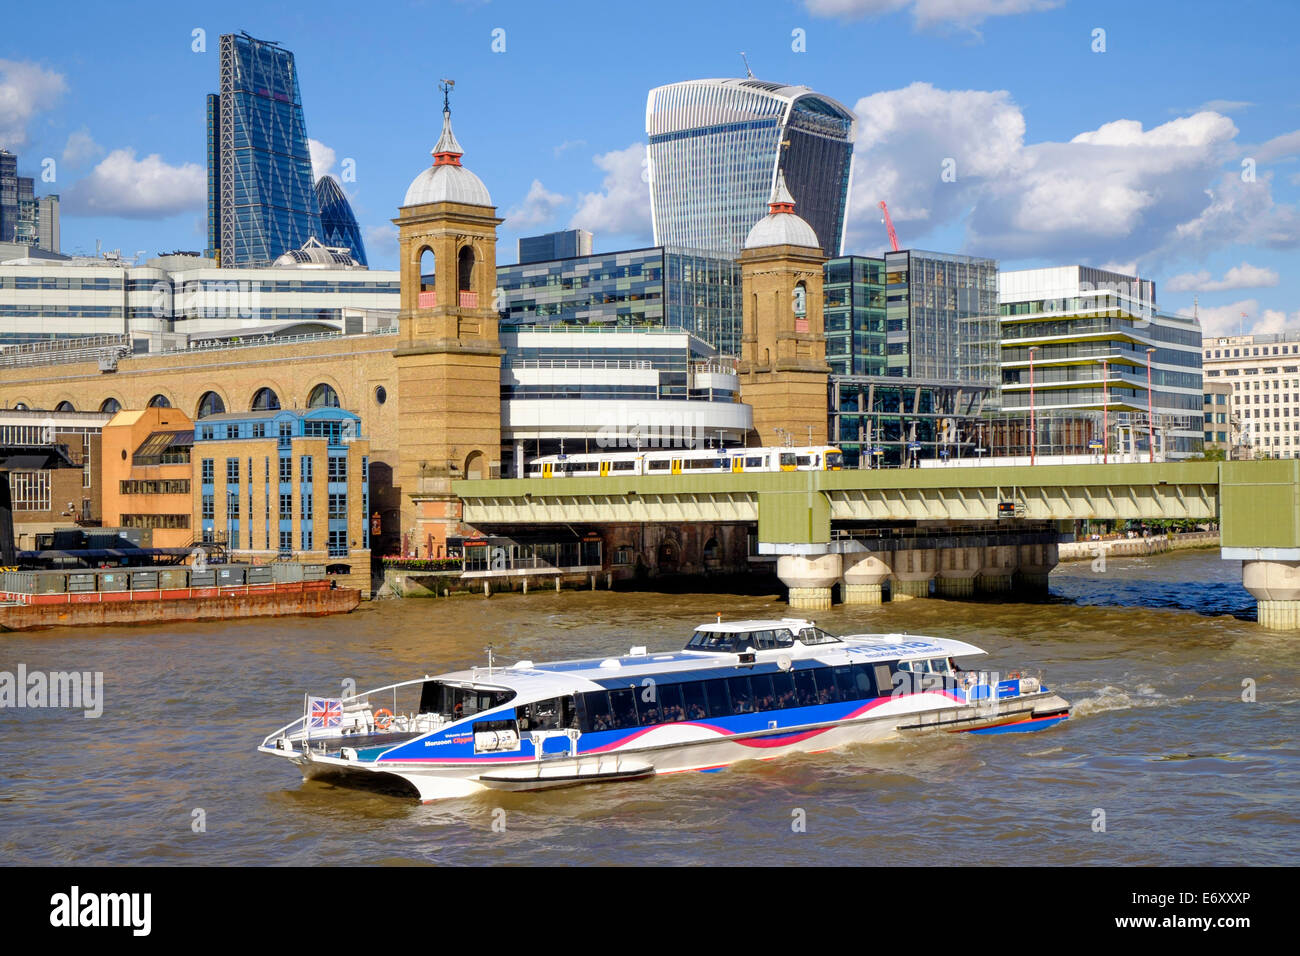 London river Thames embankment showing Thames cruise boat plus buildings and london skyline in background, - Stock Image